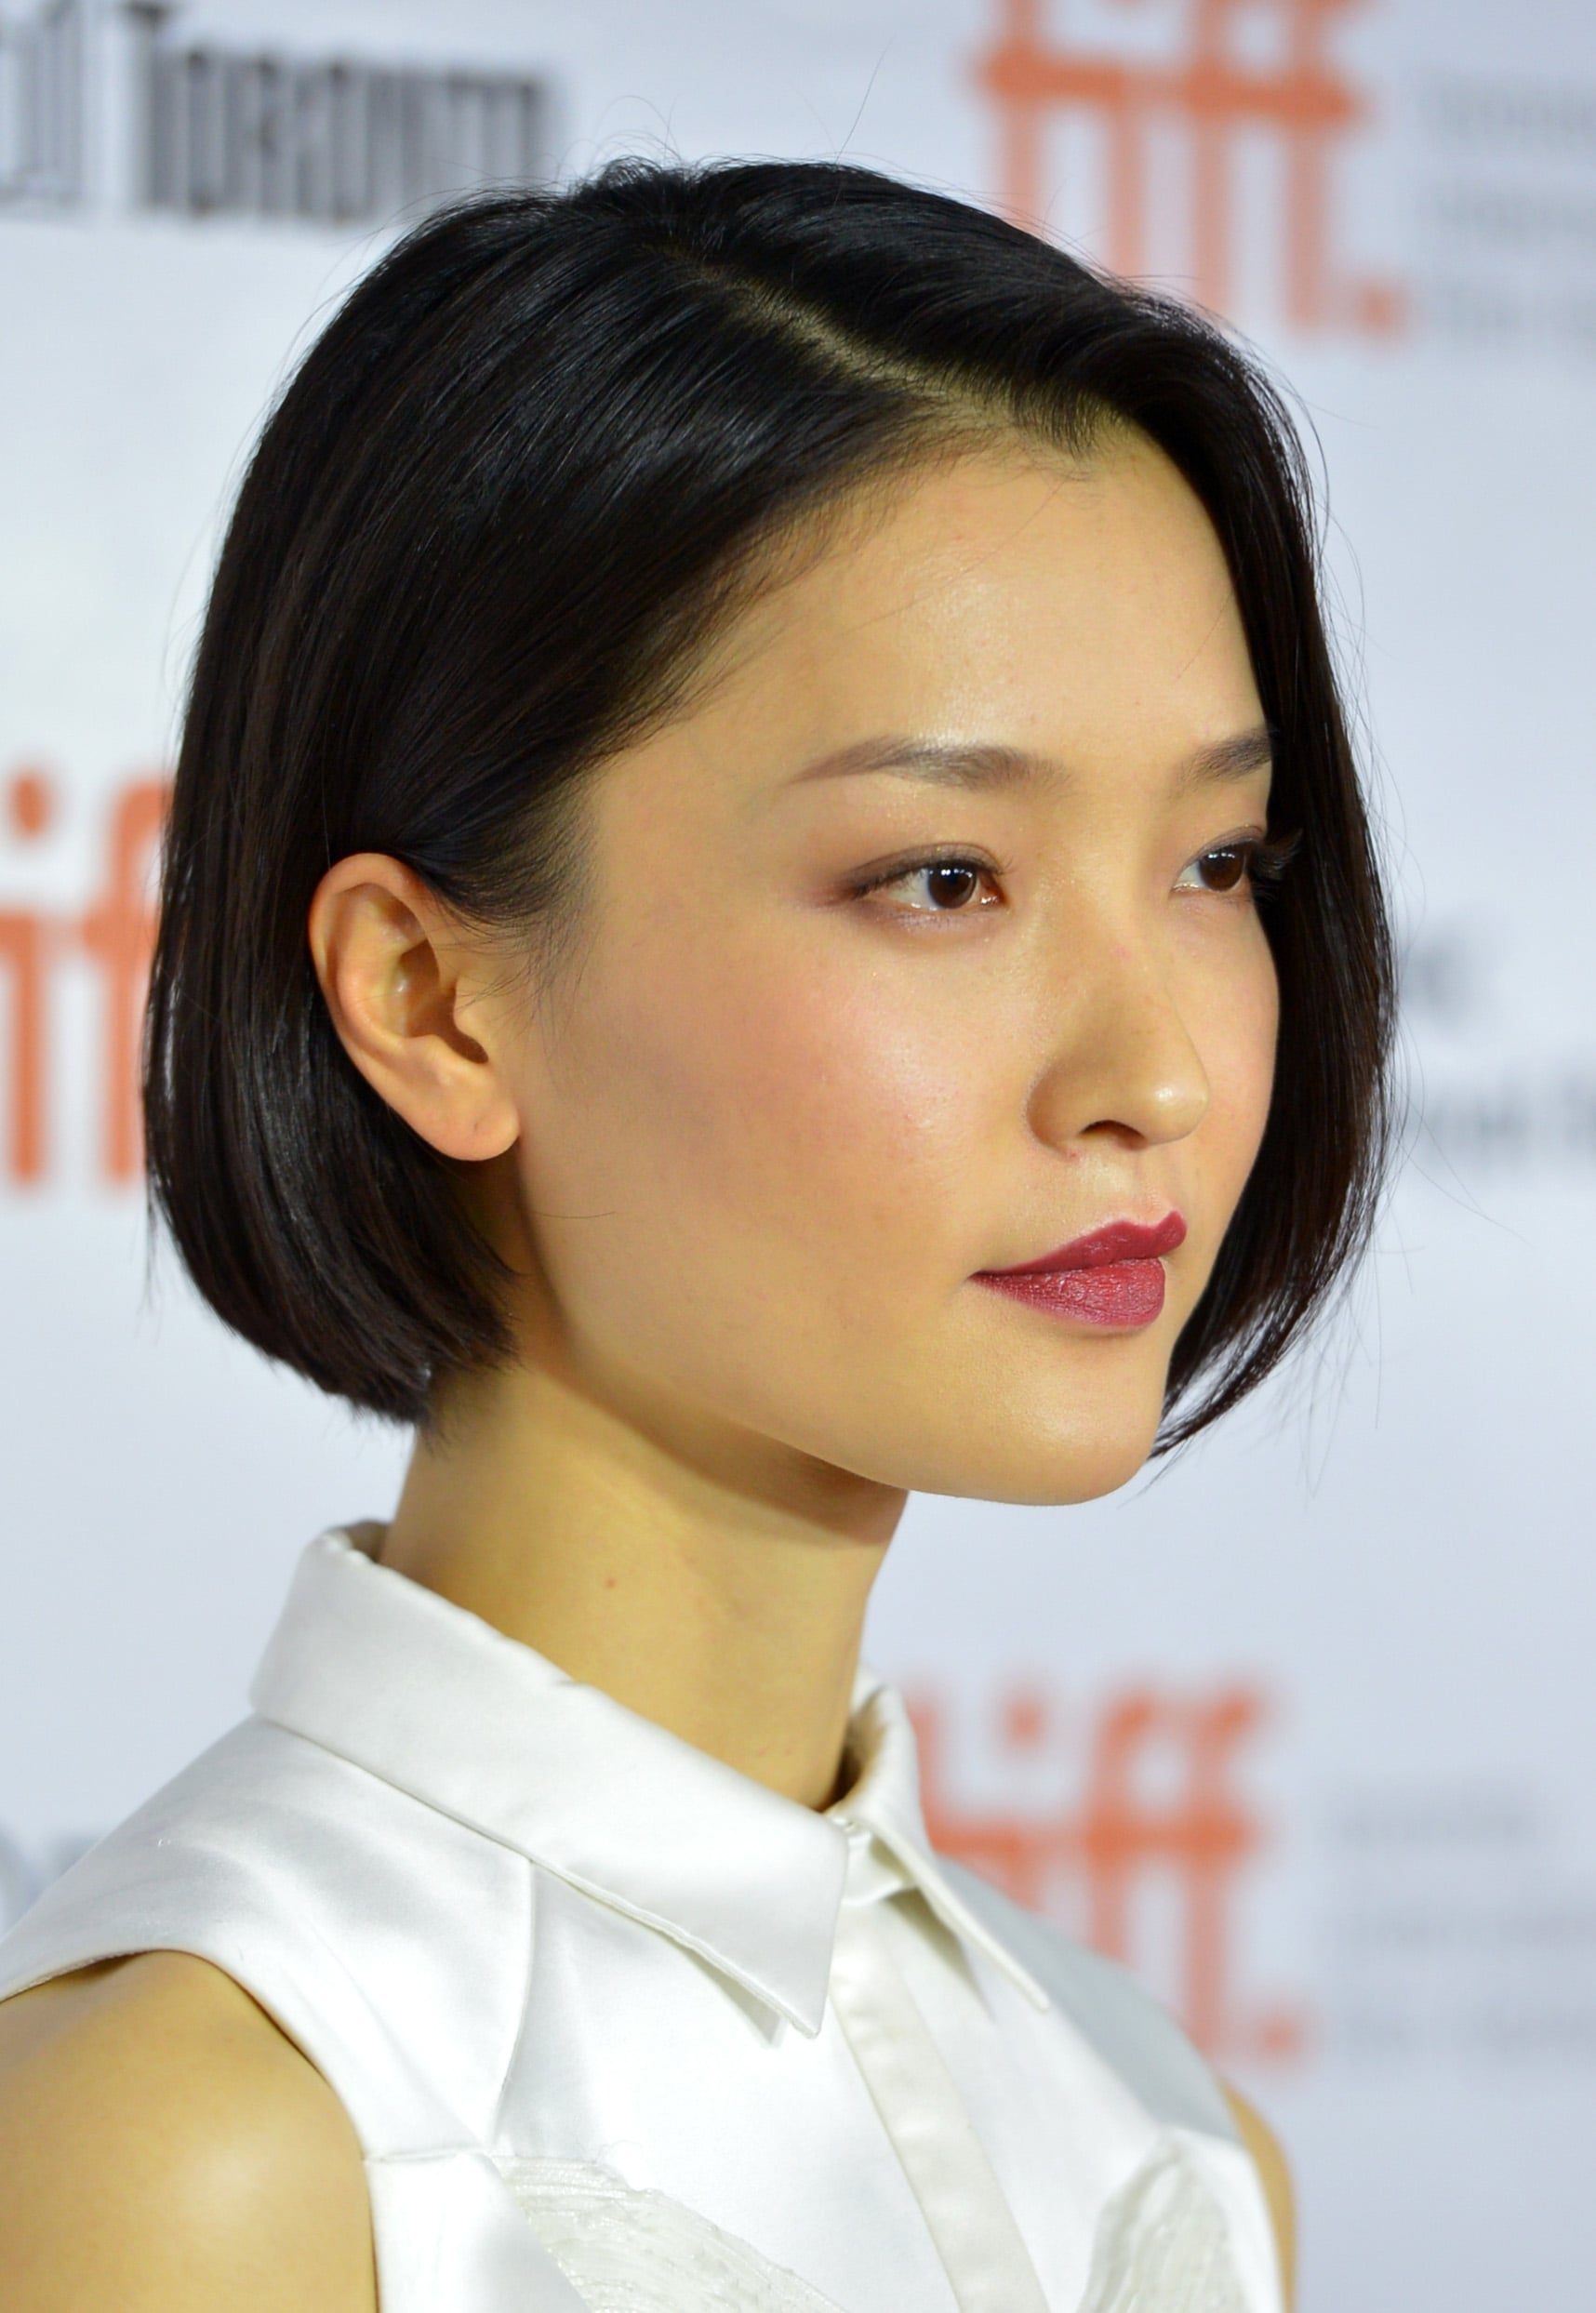 Between her bob and berry lips, Du Juan looked absolutely flawless on the red carpet at the American Dreams premiere.